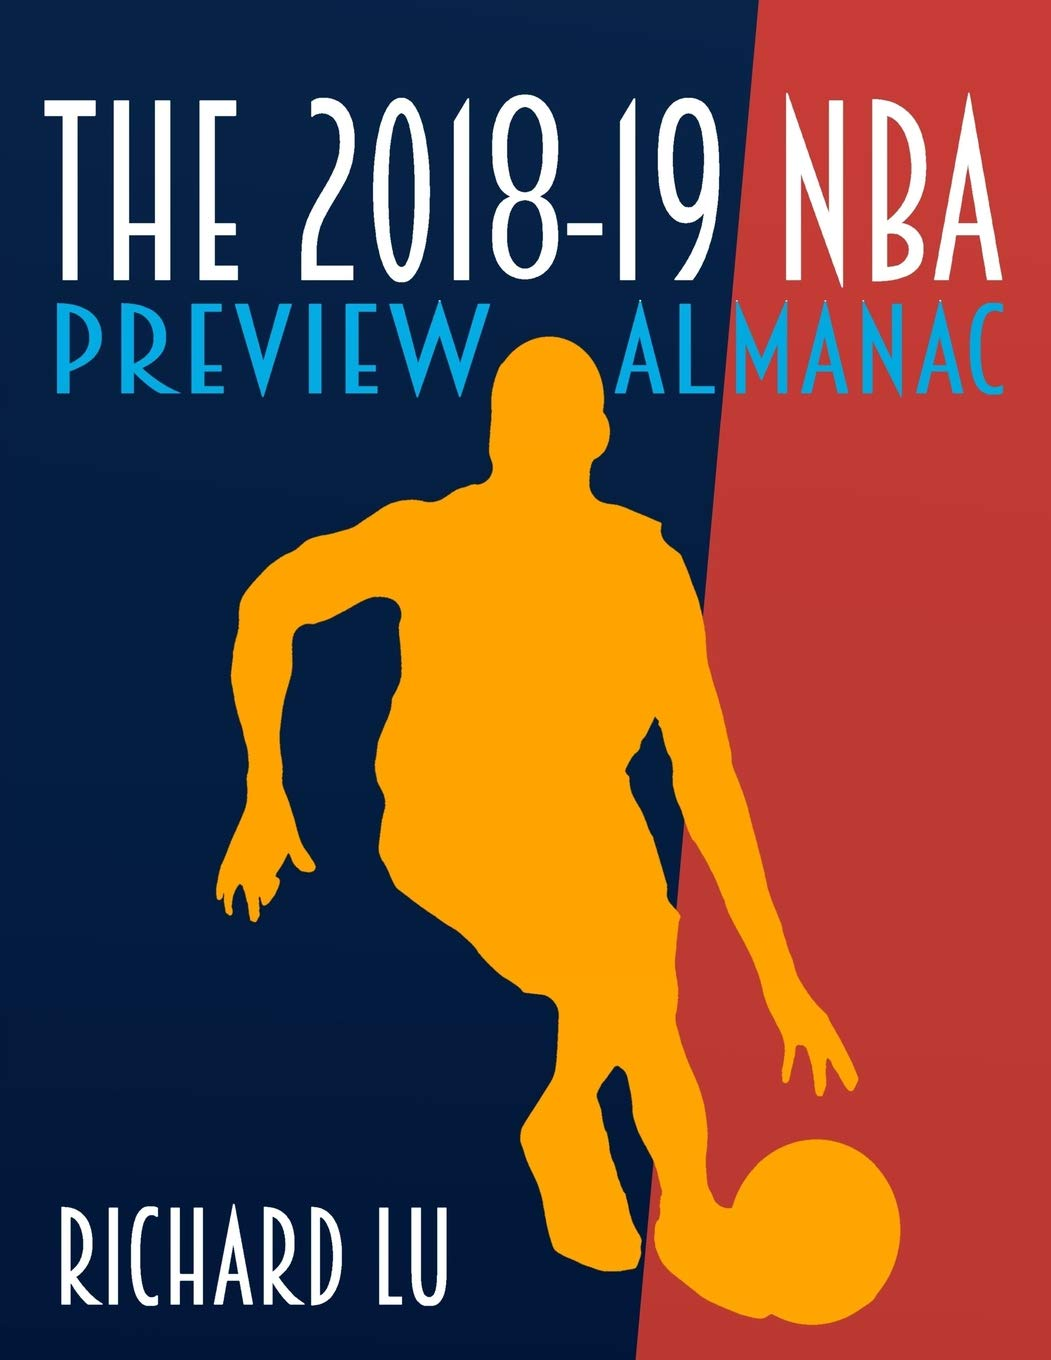 The 2018-19 NBA Preview Almanac